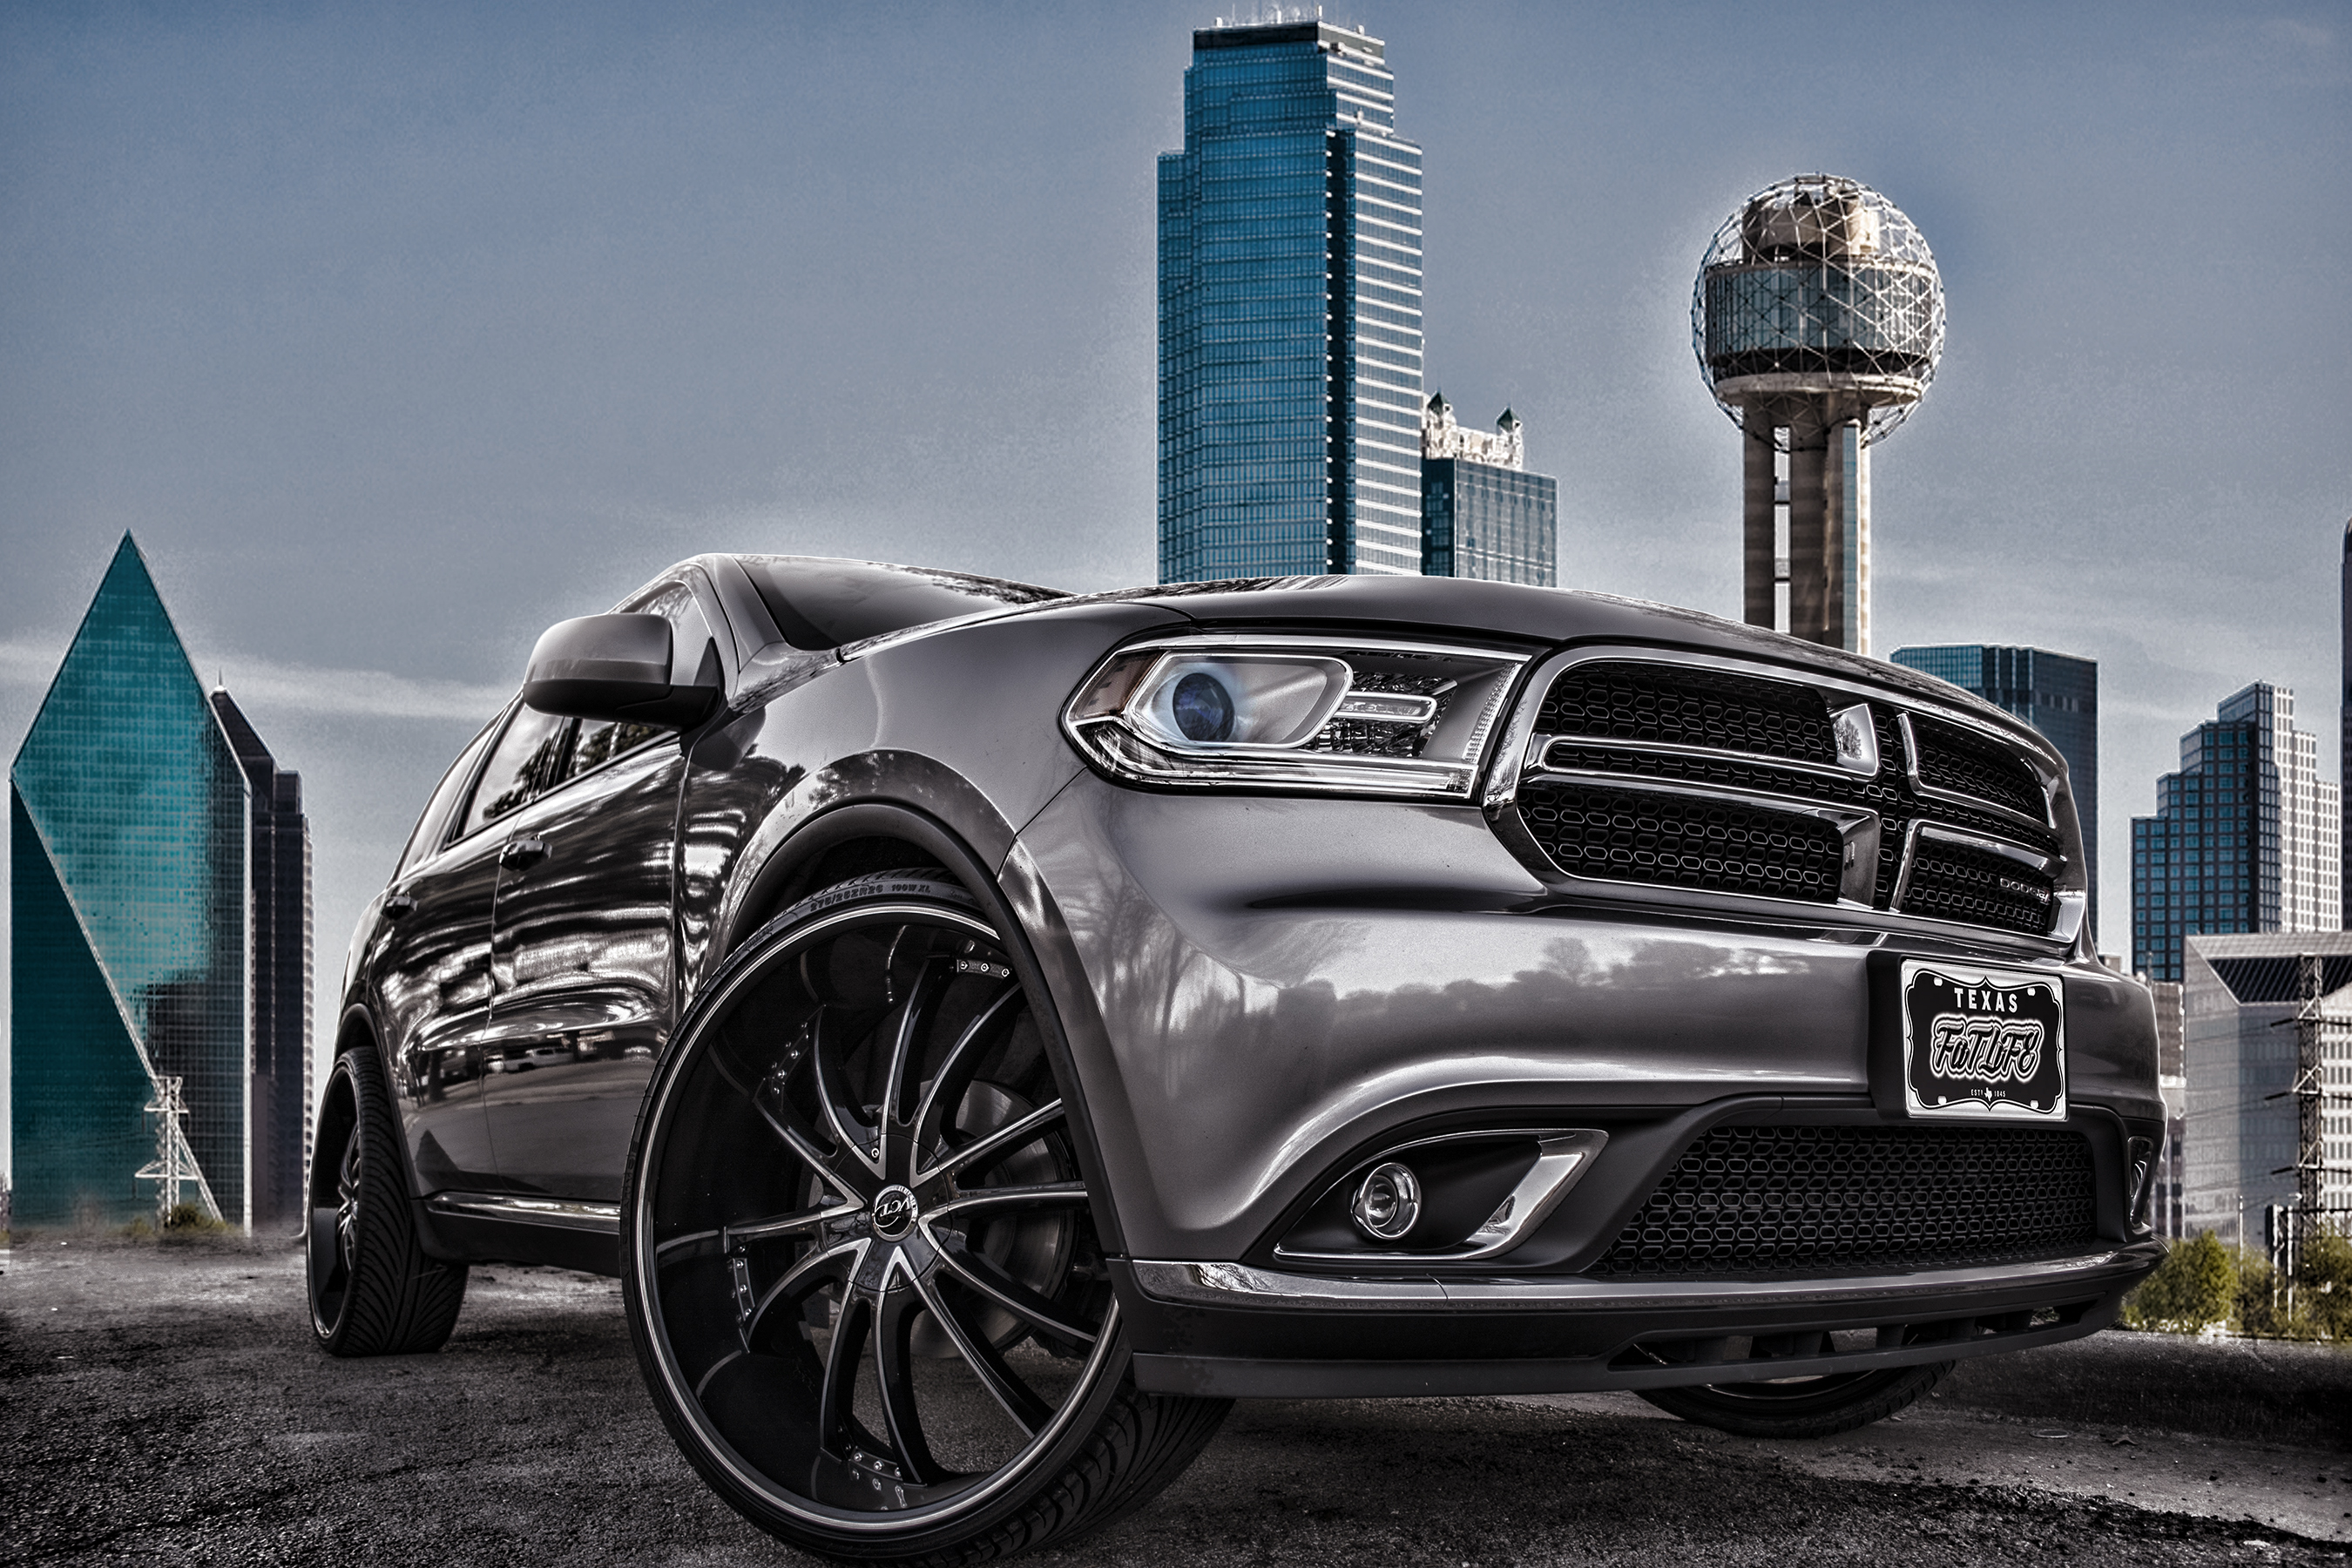 dodge durango - view all dodge durango at cardomain